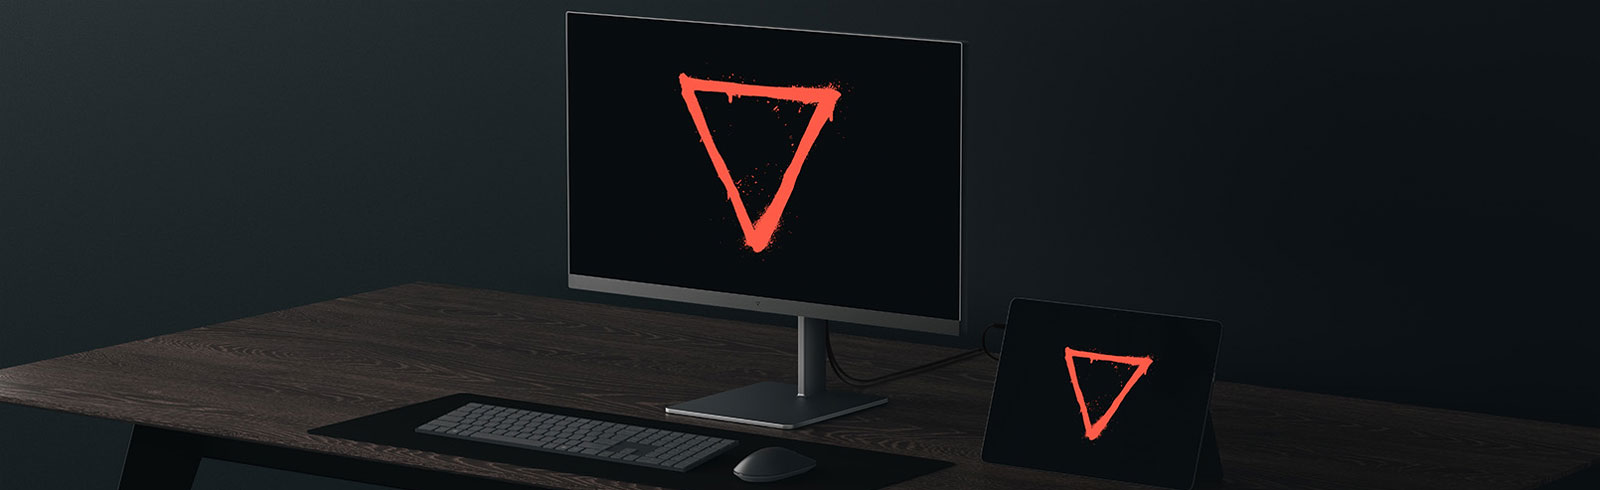 Eve Spectrum updates two of its monitors with HDMI 2.1 inputs